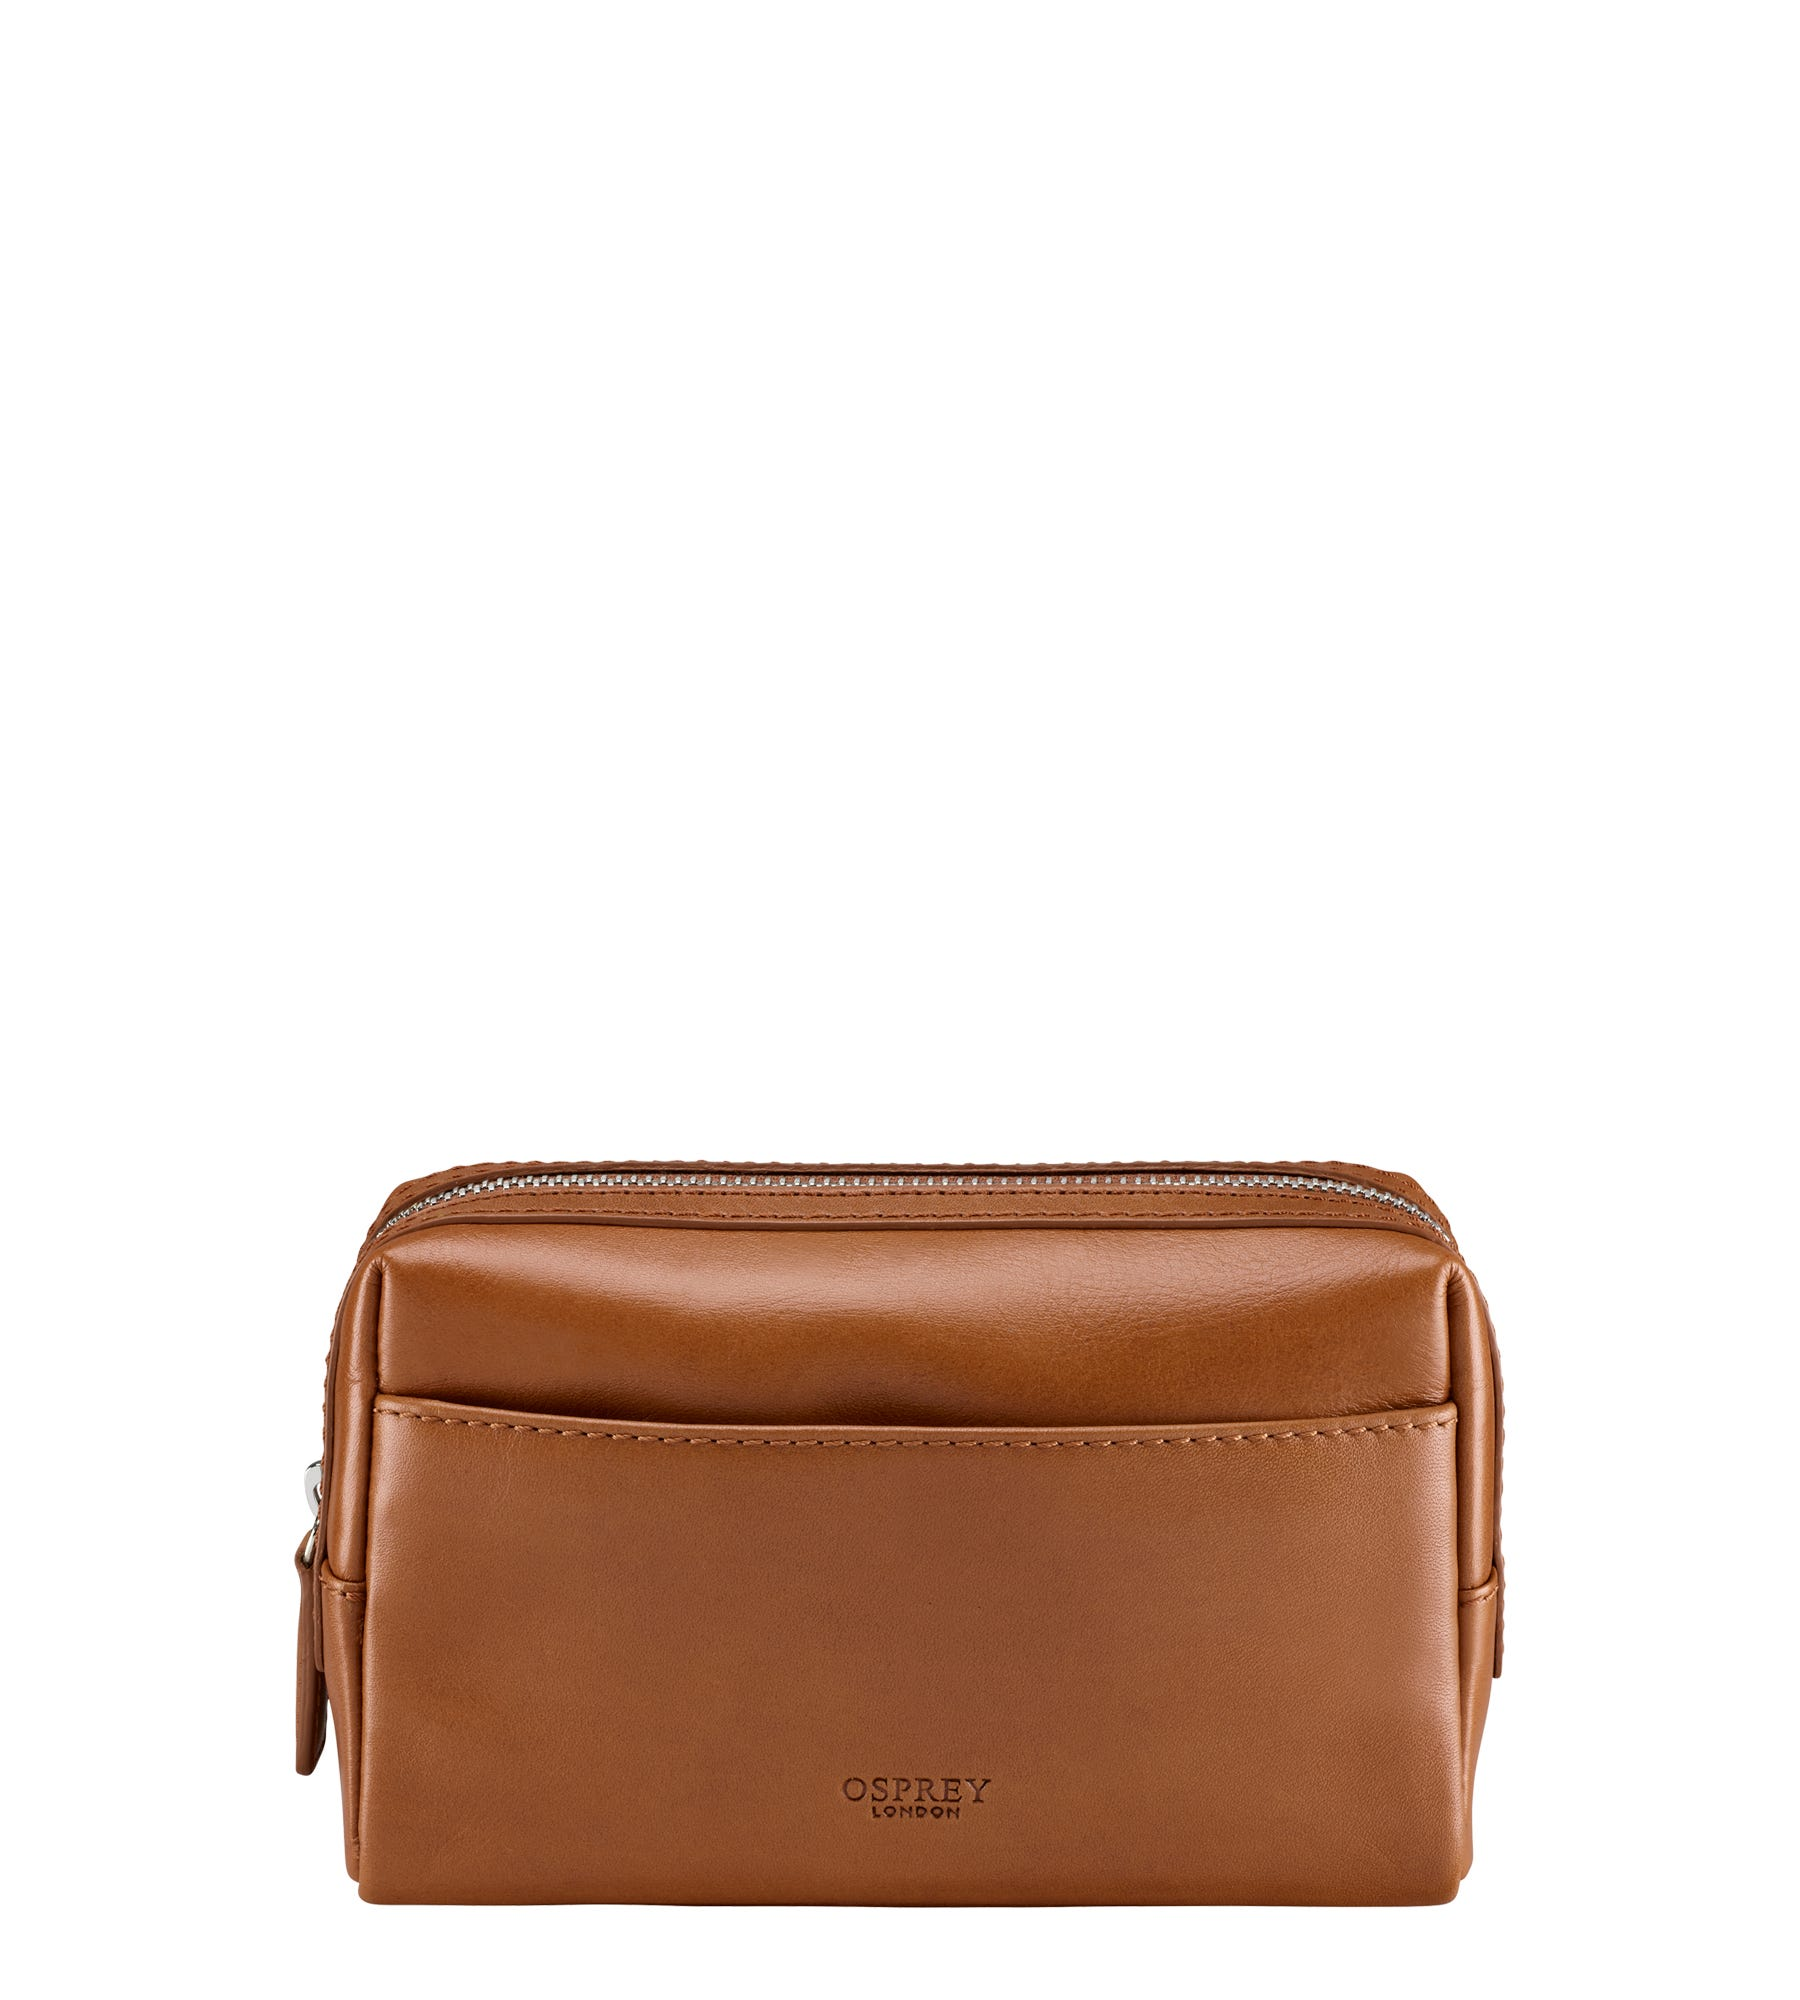 An image of The Pall Mall Slim Leather Washbag